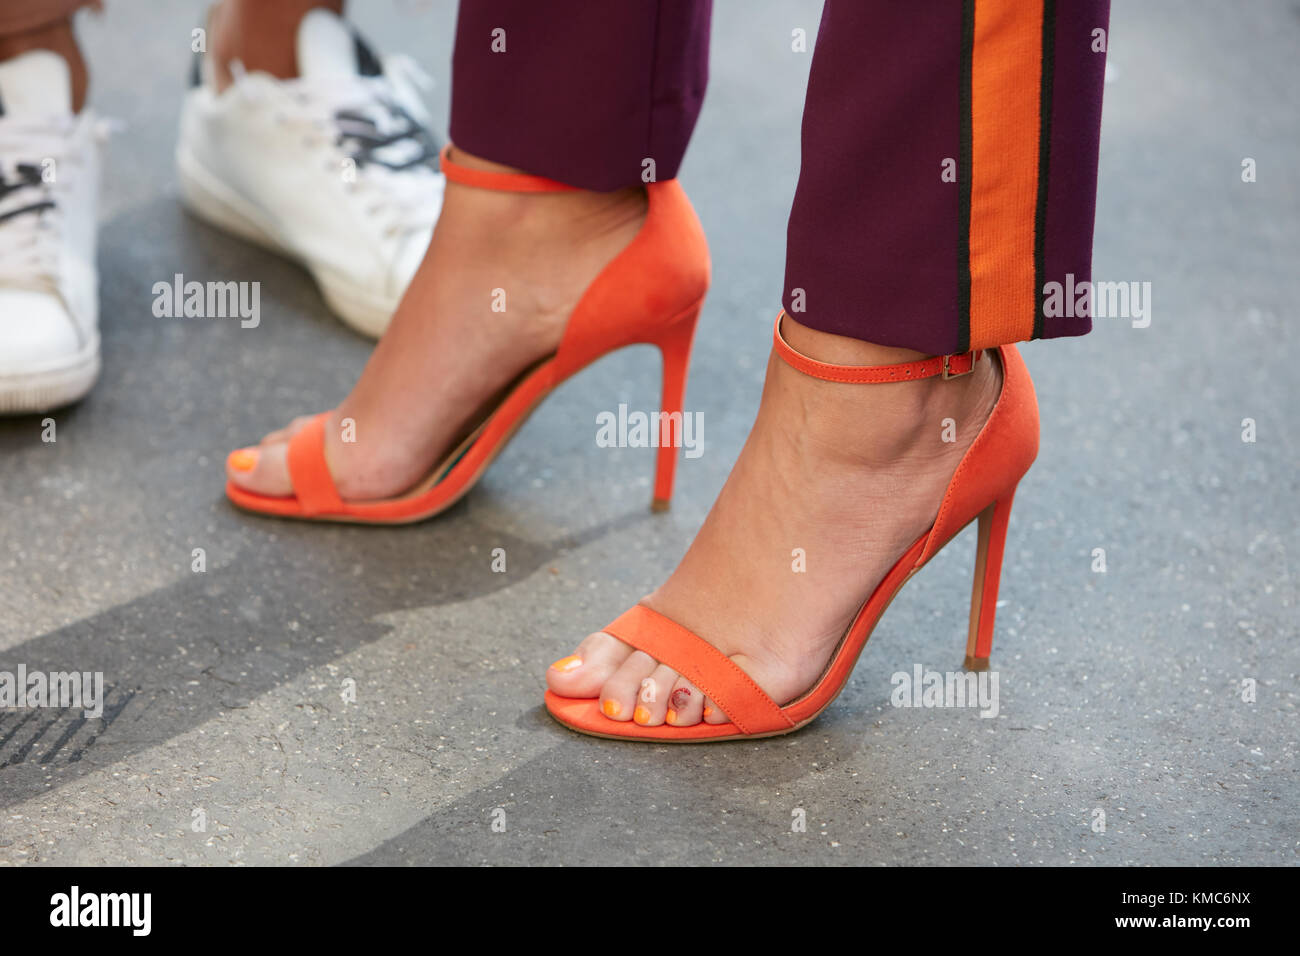 the best attitude b3cf7 3ad20 Mailand - 23. September: Frau mit orange High Heel offene ...